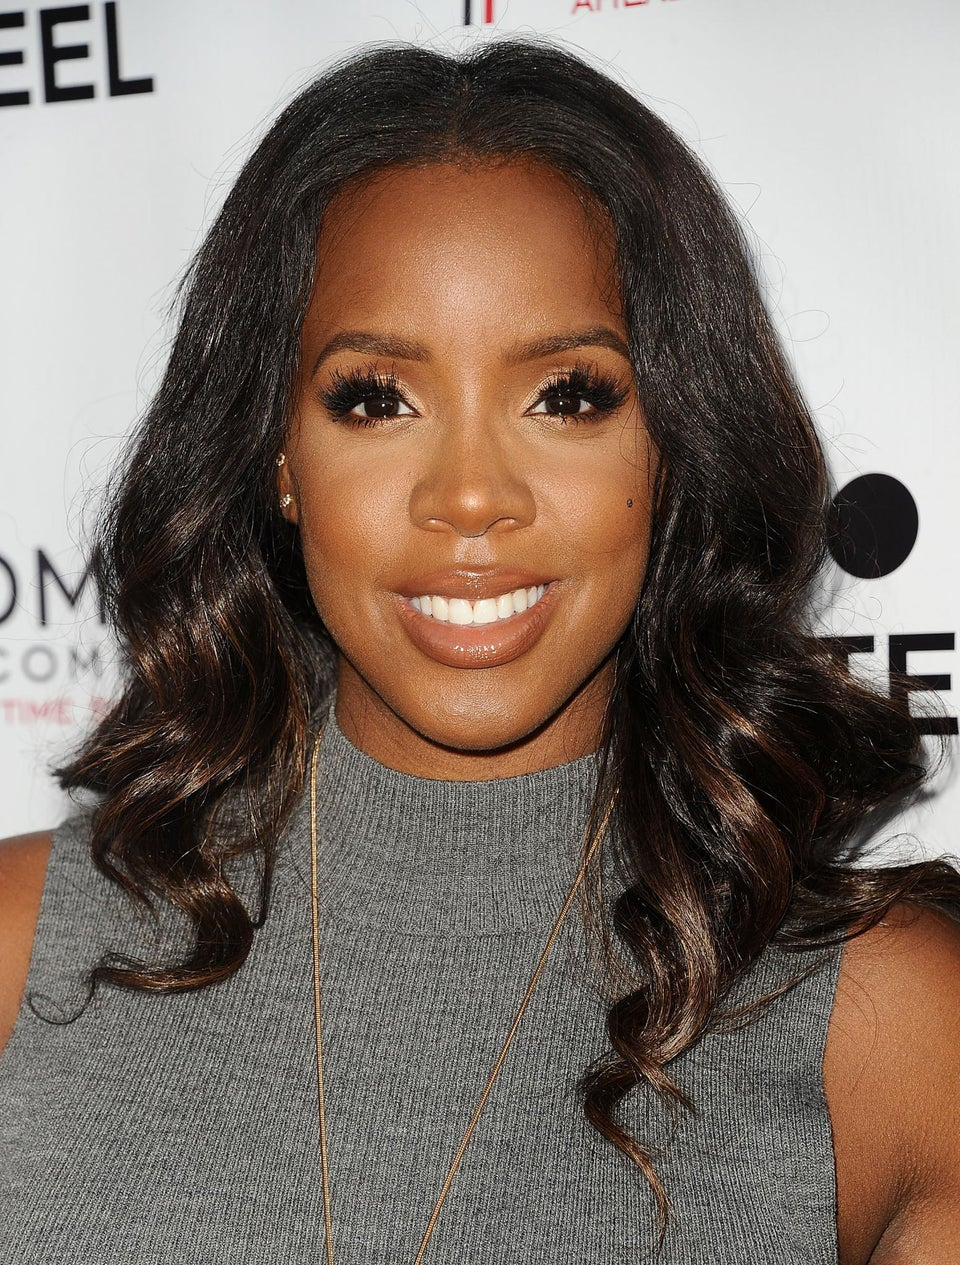 EXCLUSIVE: Kelly Rowland on Becoming a Mom: 'I Have Been Completely on a High'